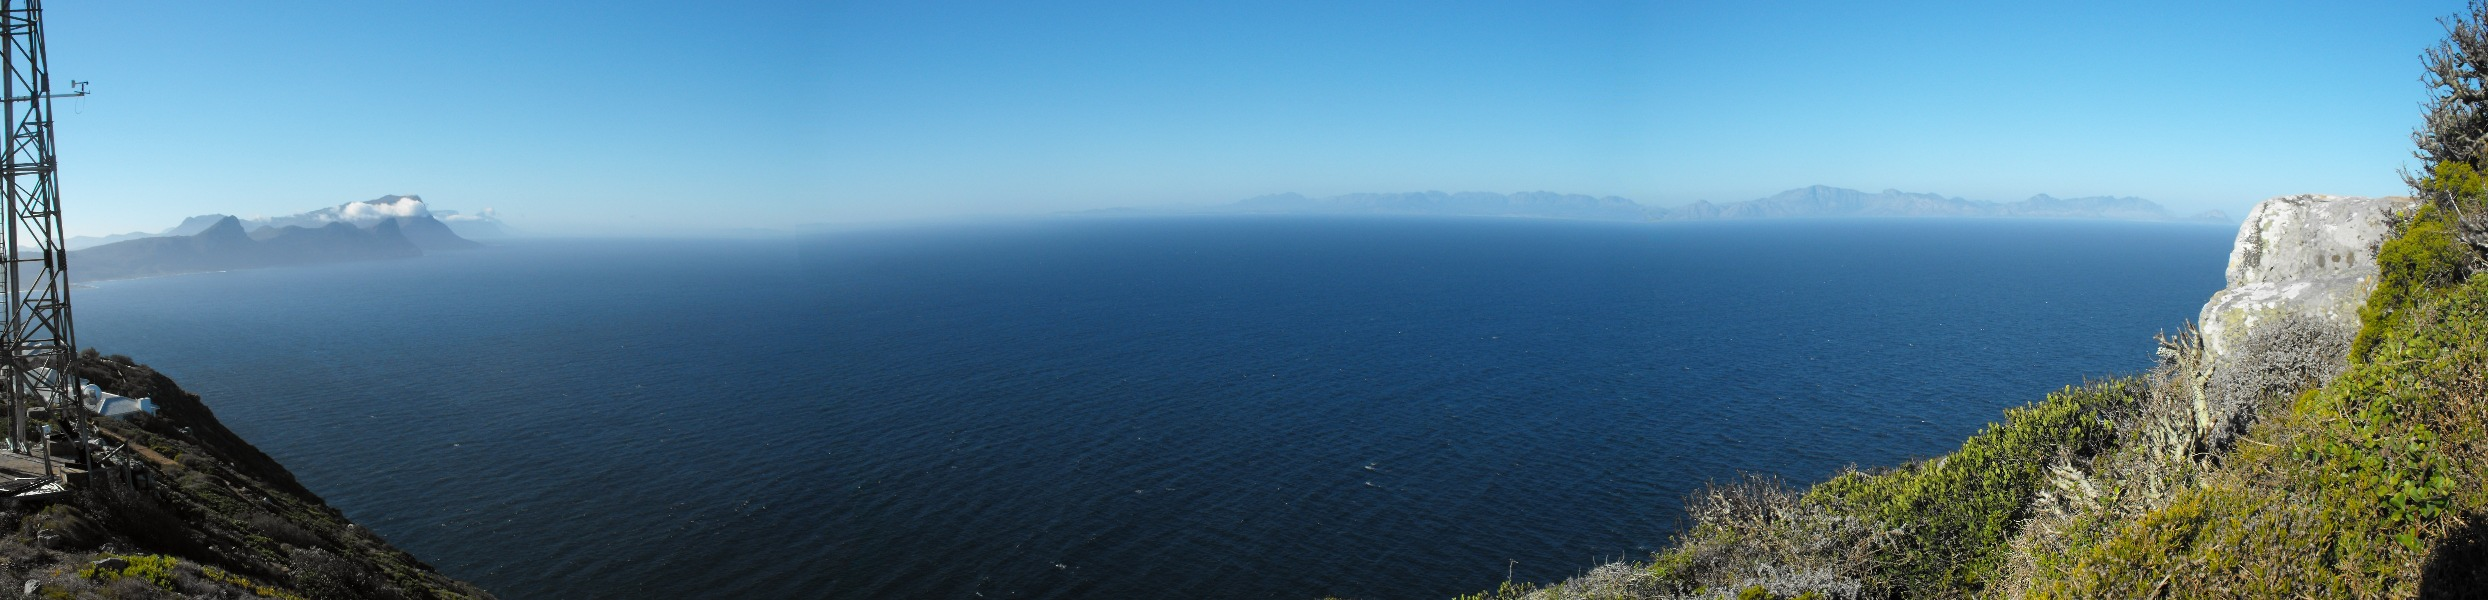 The view from Cape Point